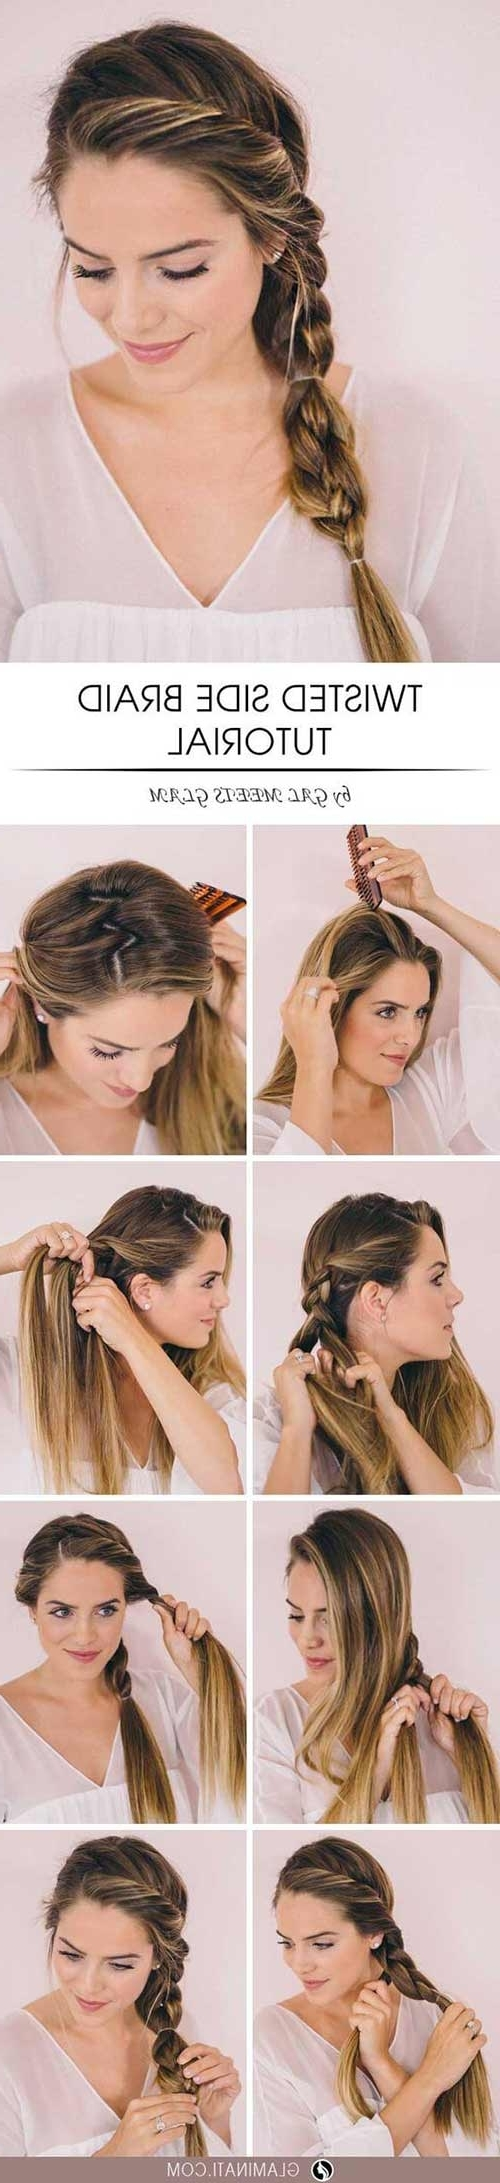 20 Awesome Hairstyles For Girls With Long Hair Inside Current Twisted Side Ponytail Hairstyles (View 6 of 20)